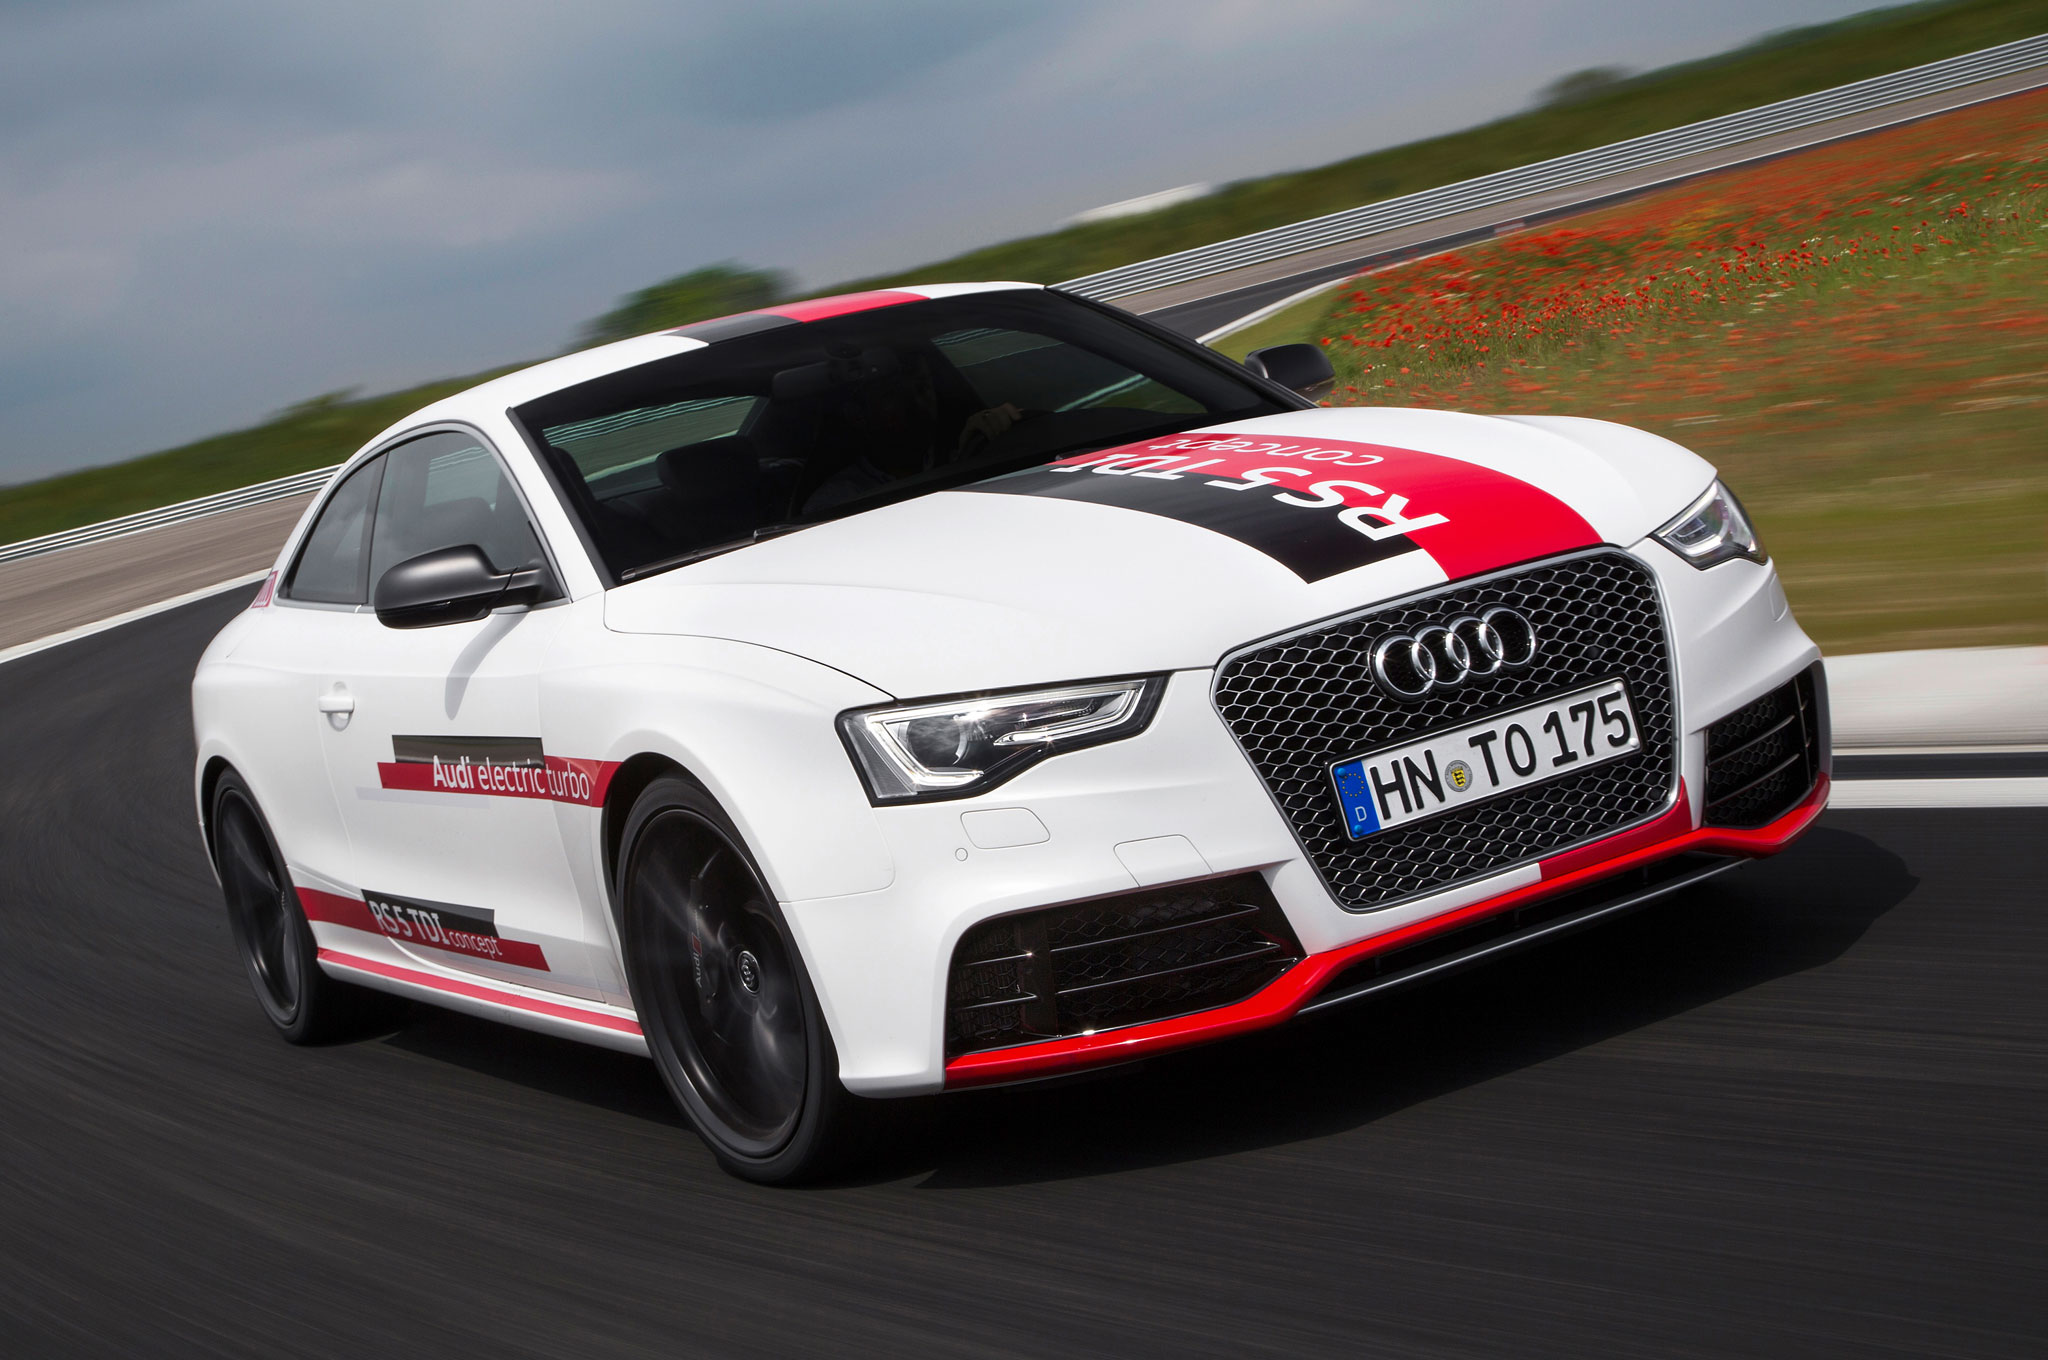 Audi RS 5 TDI Concept Previews New 48-Volt Electrical System